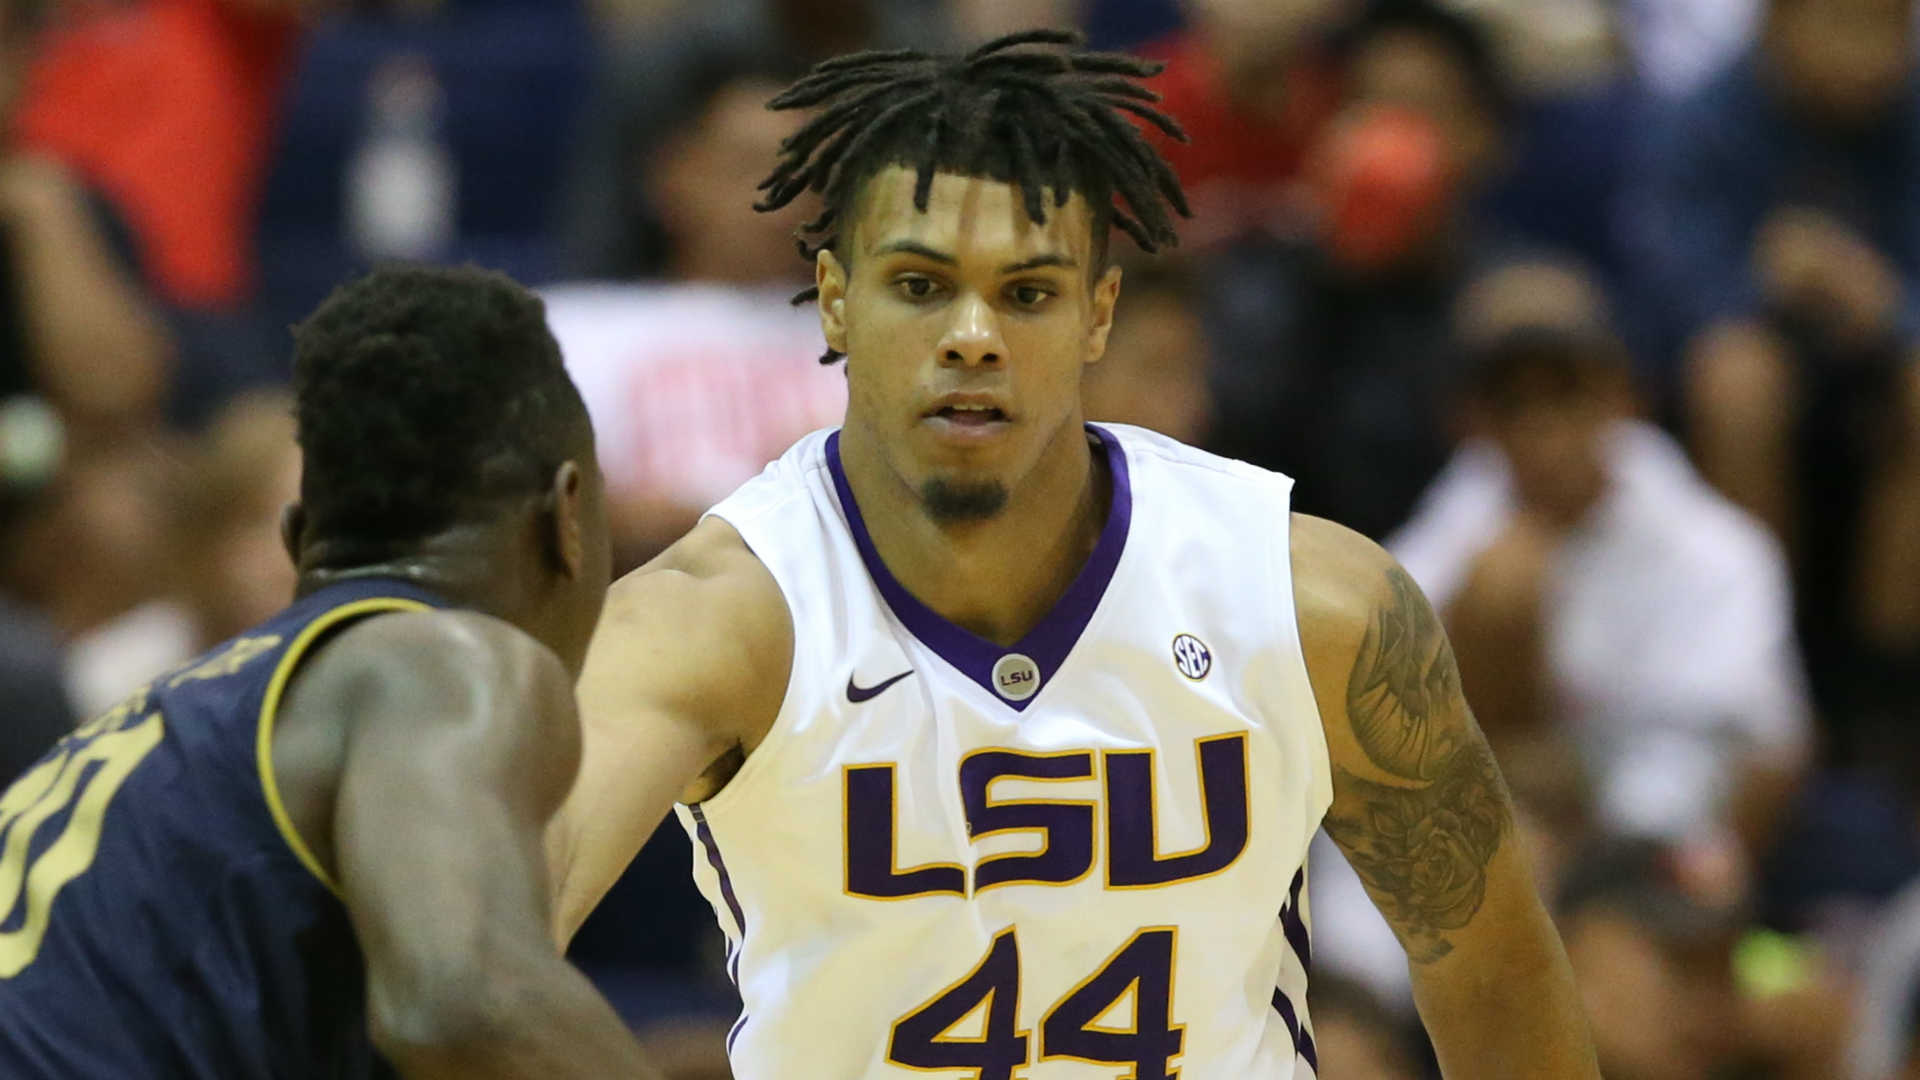 LSU Tigers player Wayde Sims killed in shooting